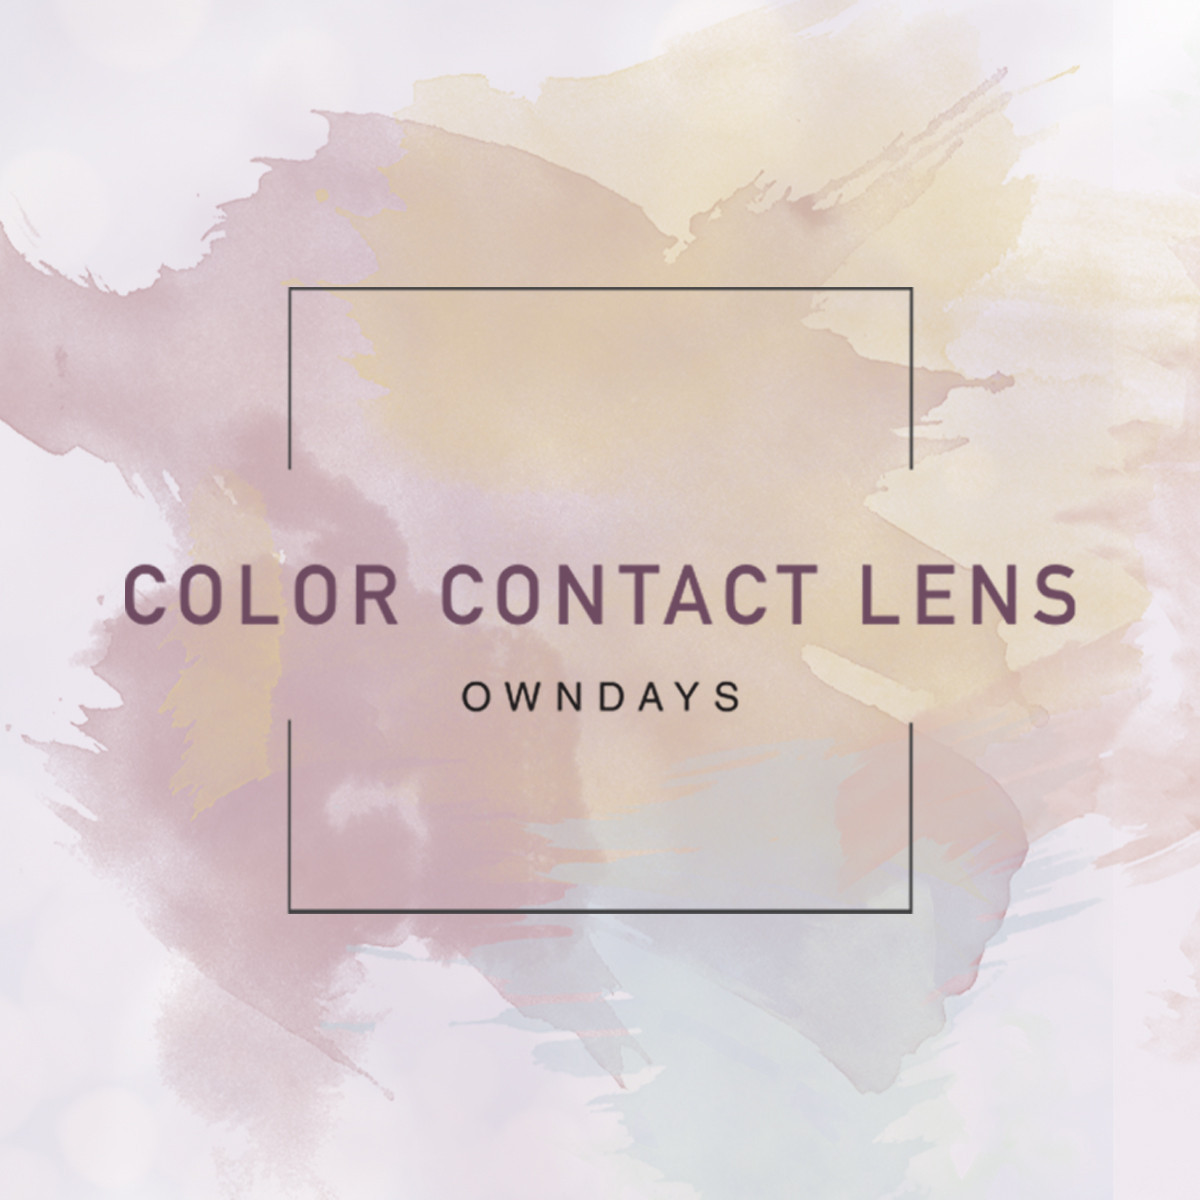 OWNDAYS COLOR CONTACT LENS